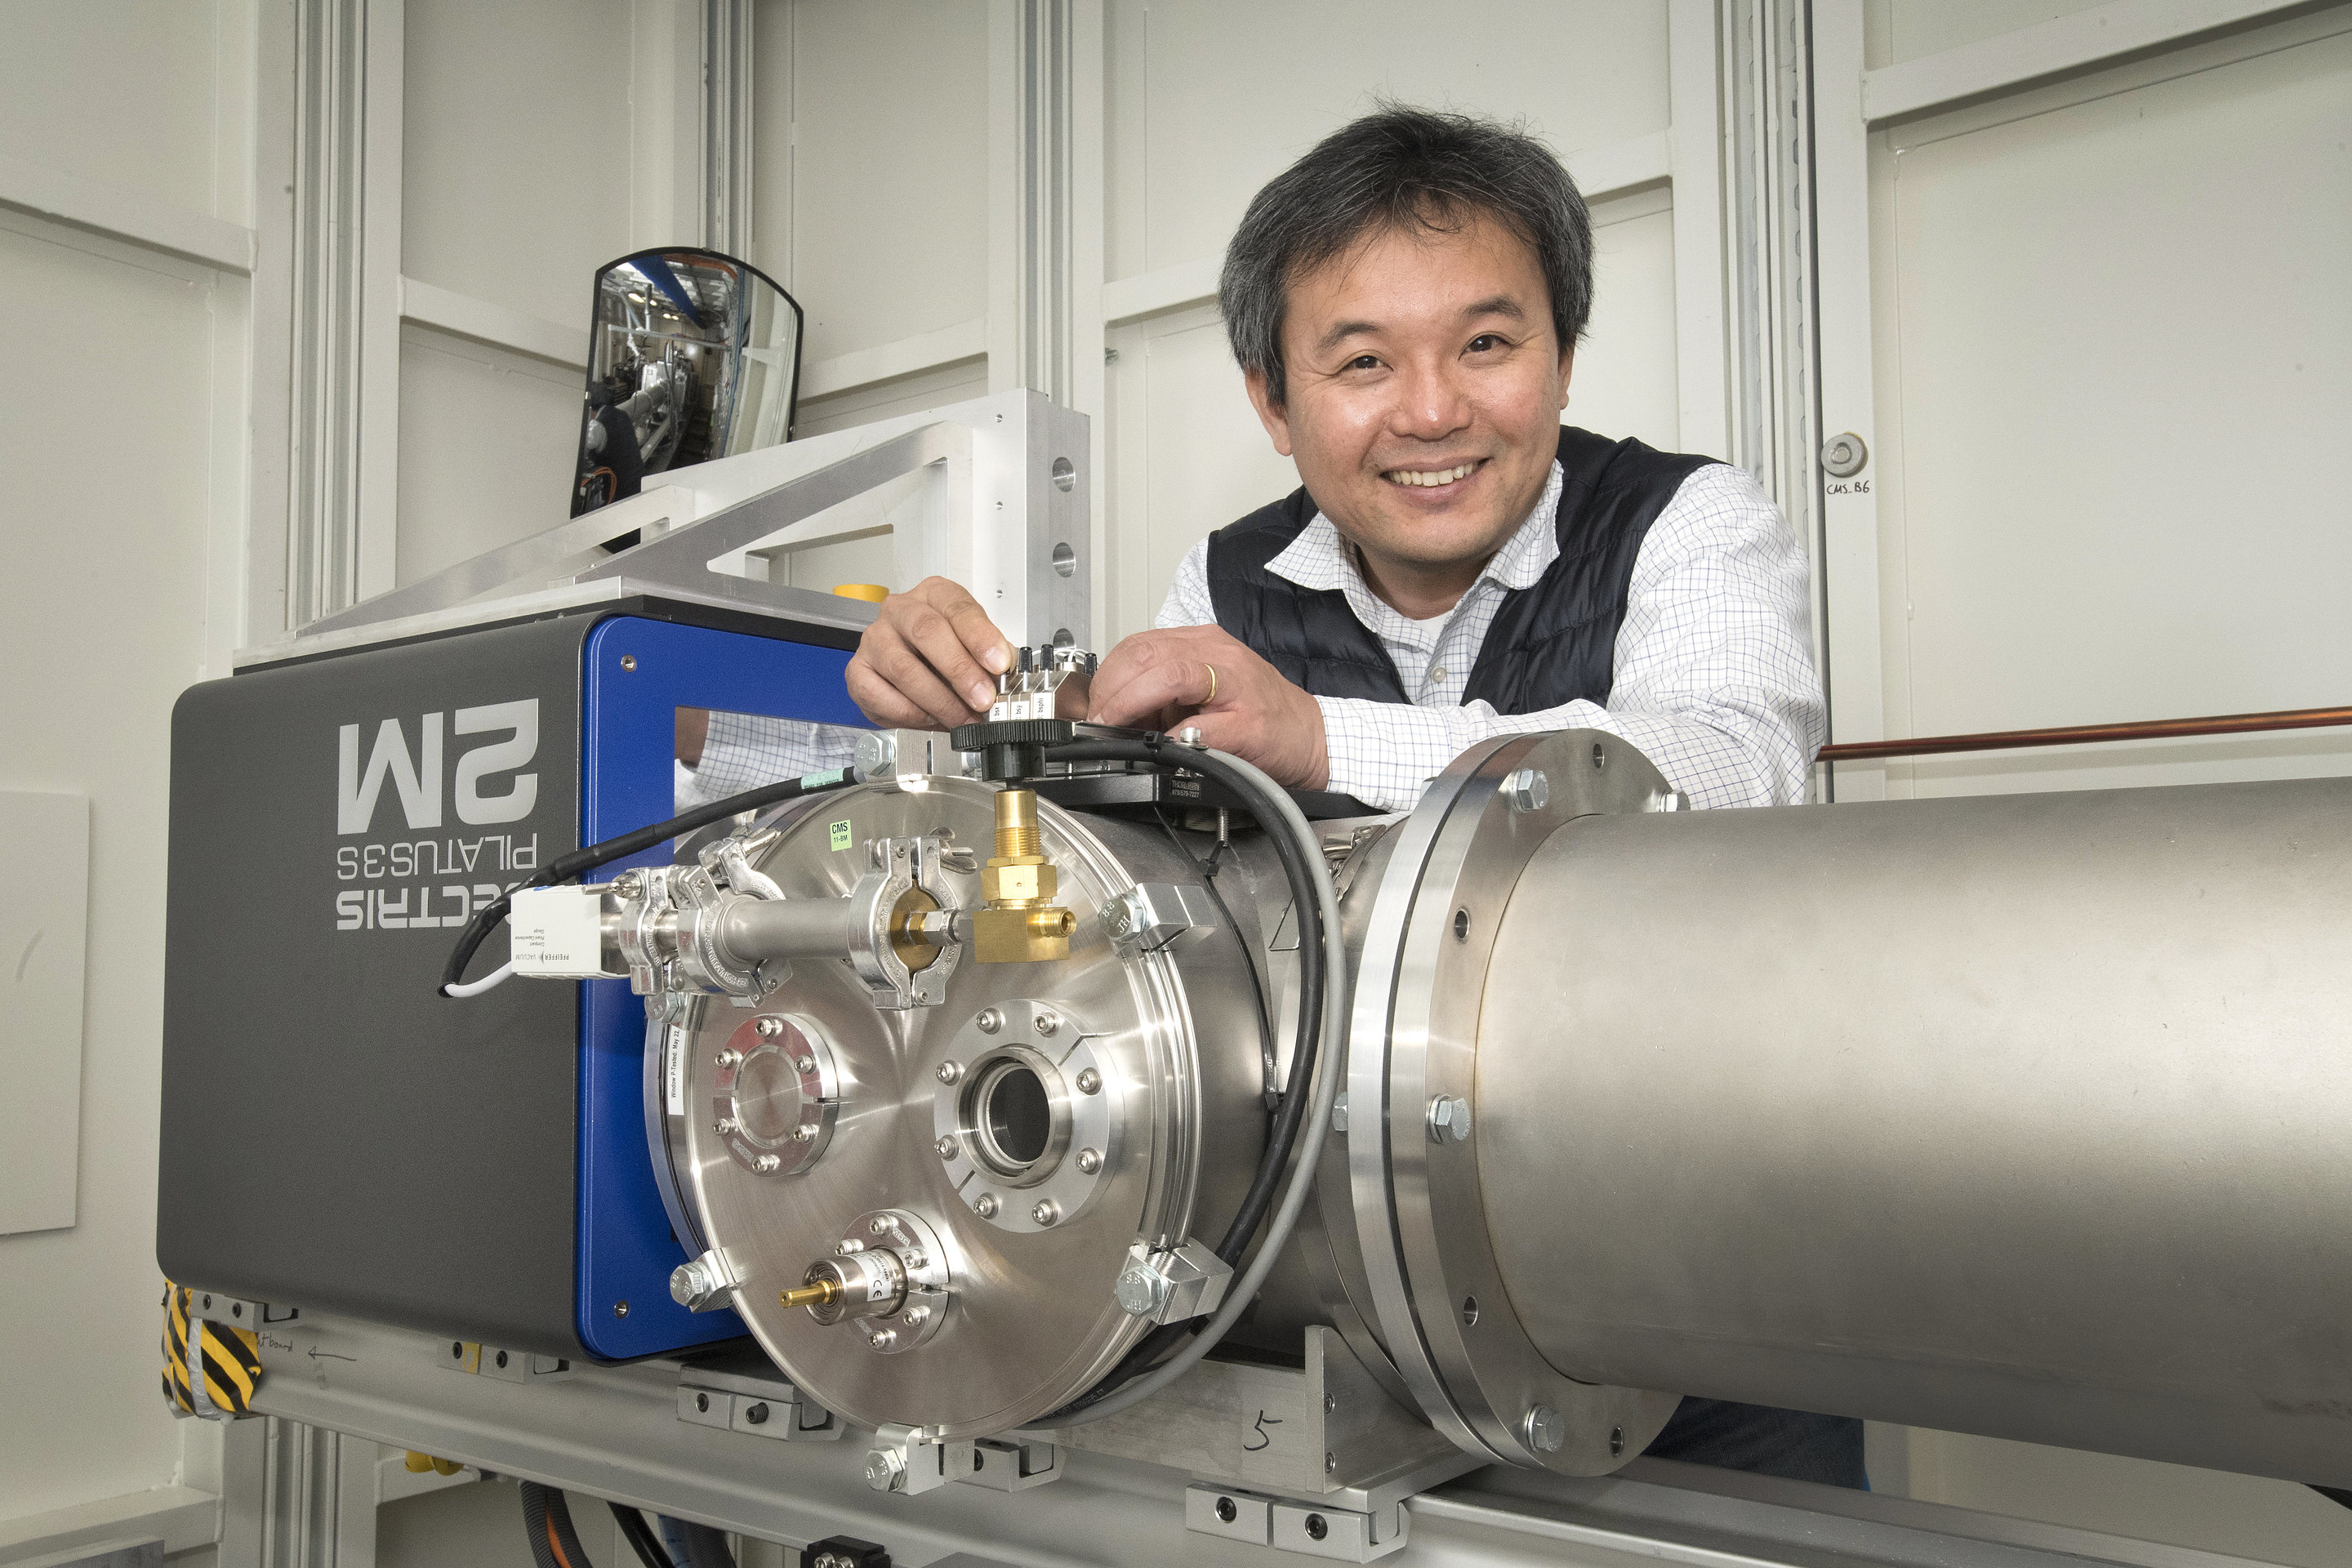 Researchers Engineer New Pathways For Self Assembled Nanostructures Molecular Assembly In Nanotechnology Masafumi Fukuto The Lead Beamline Scientists Of Cms Assisted Team To Investigate Their Samples Tiny Structures Using His Beamlines